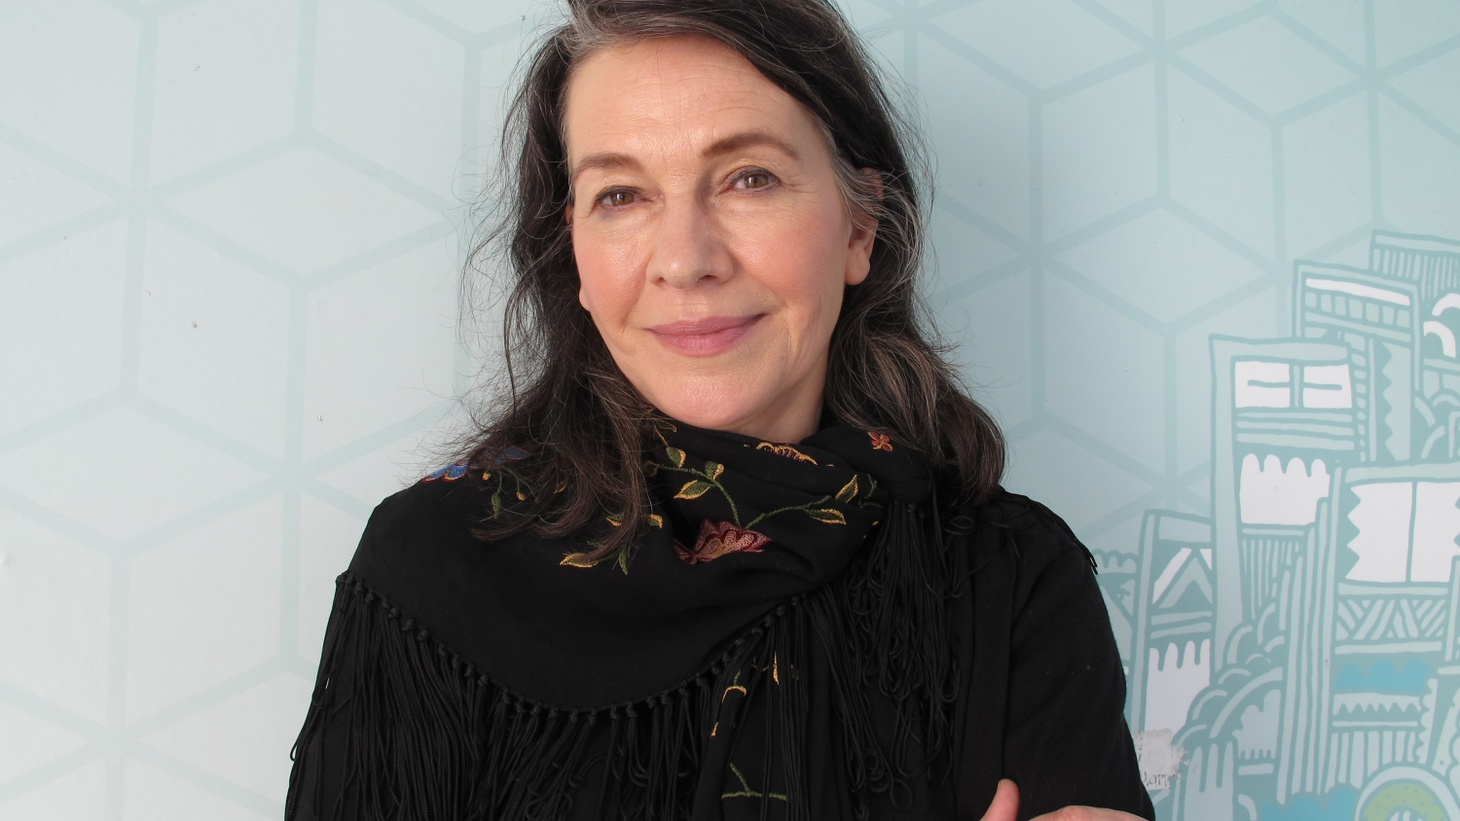 """In Louise Erdrich's LaRose, a terrible tragedy forces two families to resort to a form of traditional """"restorative justice"""" in which one son must be given to replace the loss of another. Erdrich talks about this act as an attempt at restoring balance in a tight knit community where healing can take generations."""